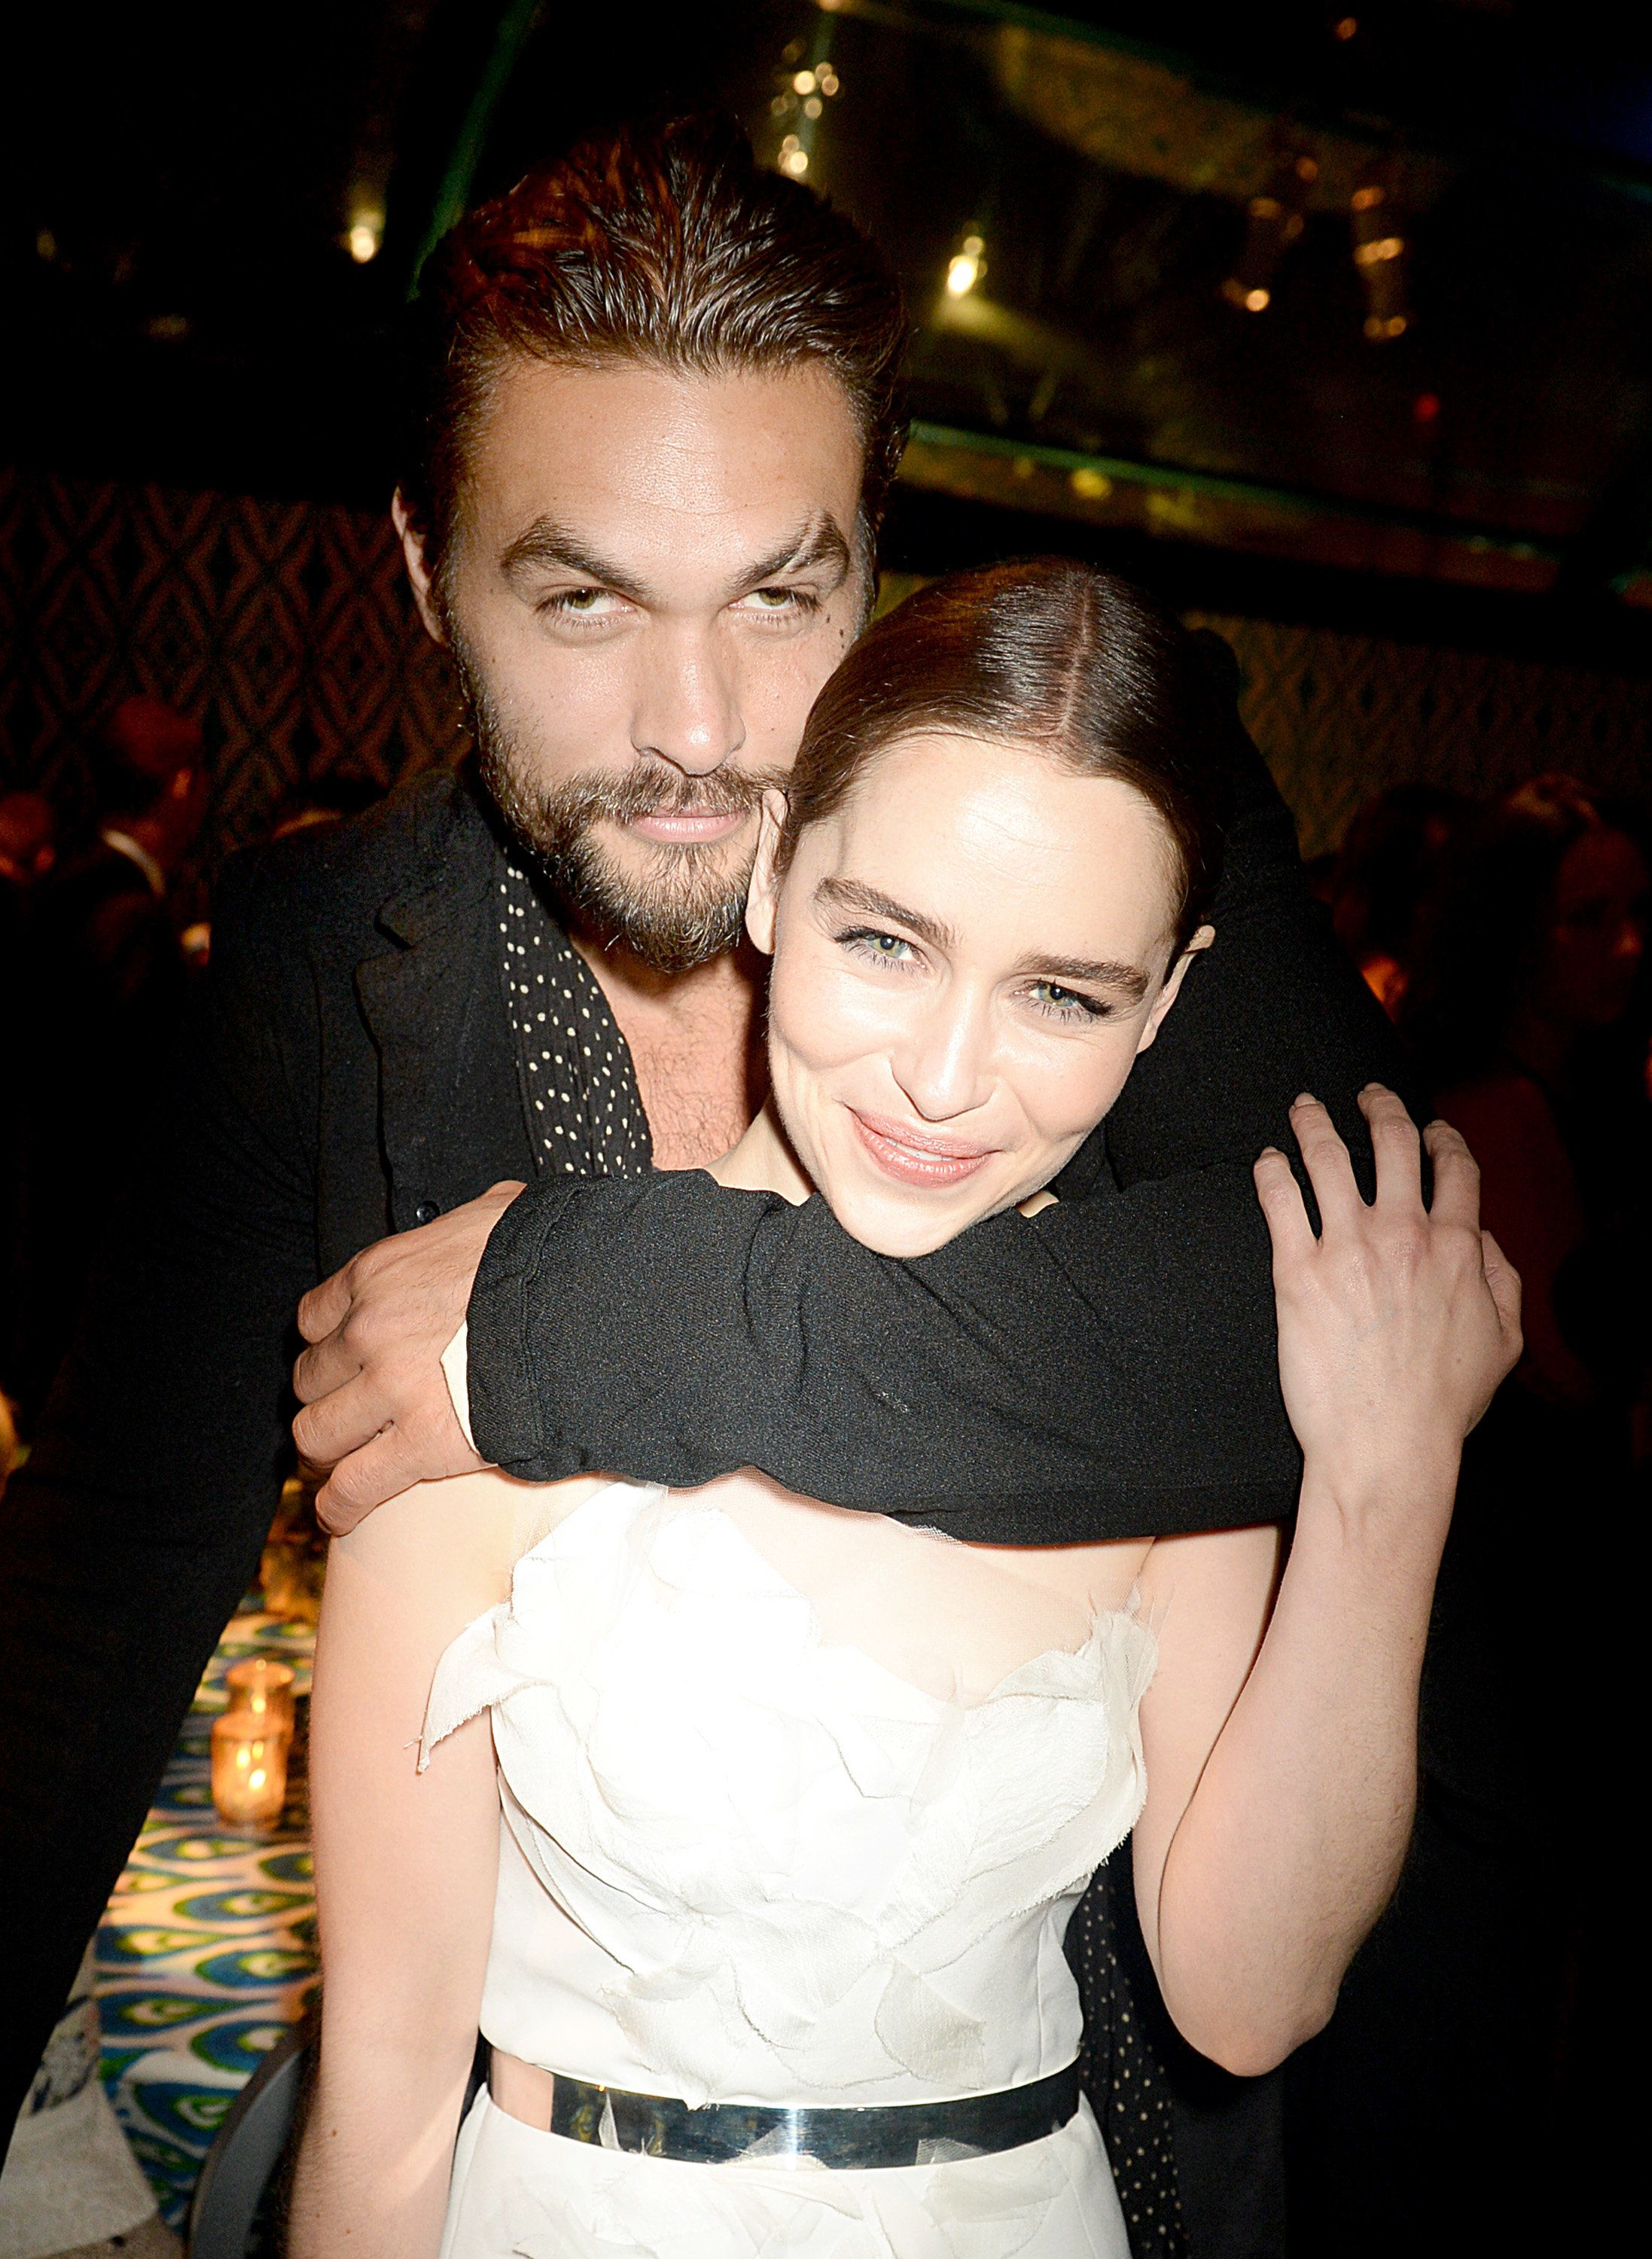 LOS ANGELES, CA - SEPTEMBER 22: Actors Jason Momoa and Emilia Clarke attend HBO's official Emmy after party in The Plaza at the Pacific Design Center on September 22, 2013 in Los Angeles, California.  (Photo by Jeff Kravitz/FilmMagic)